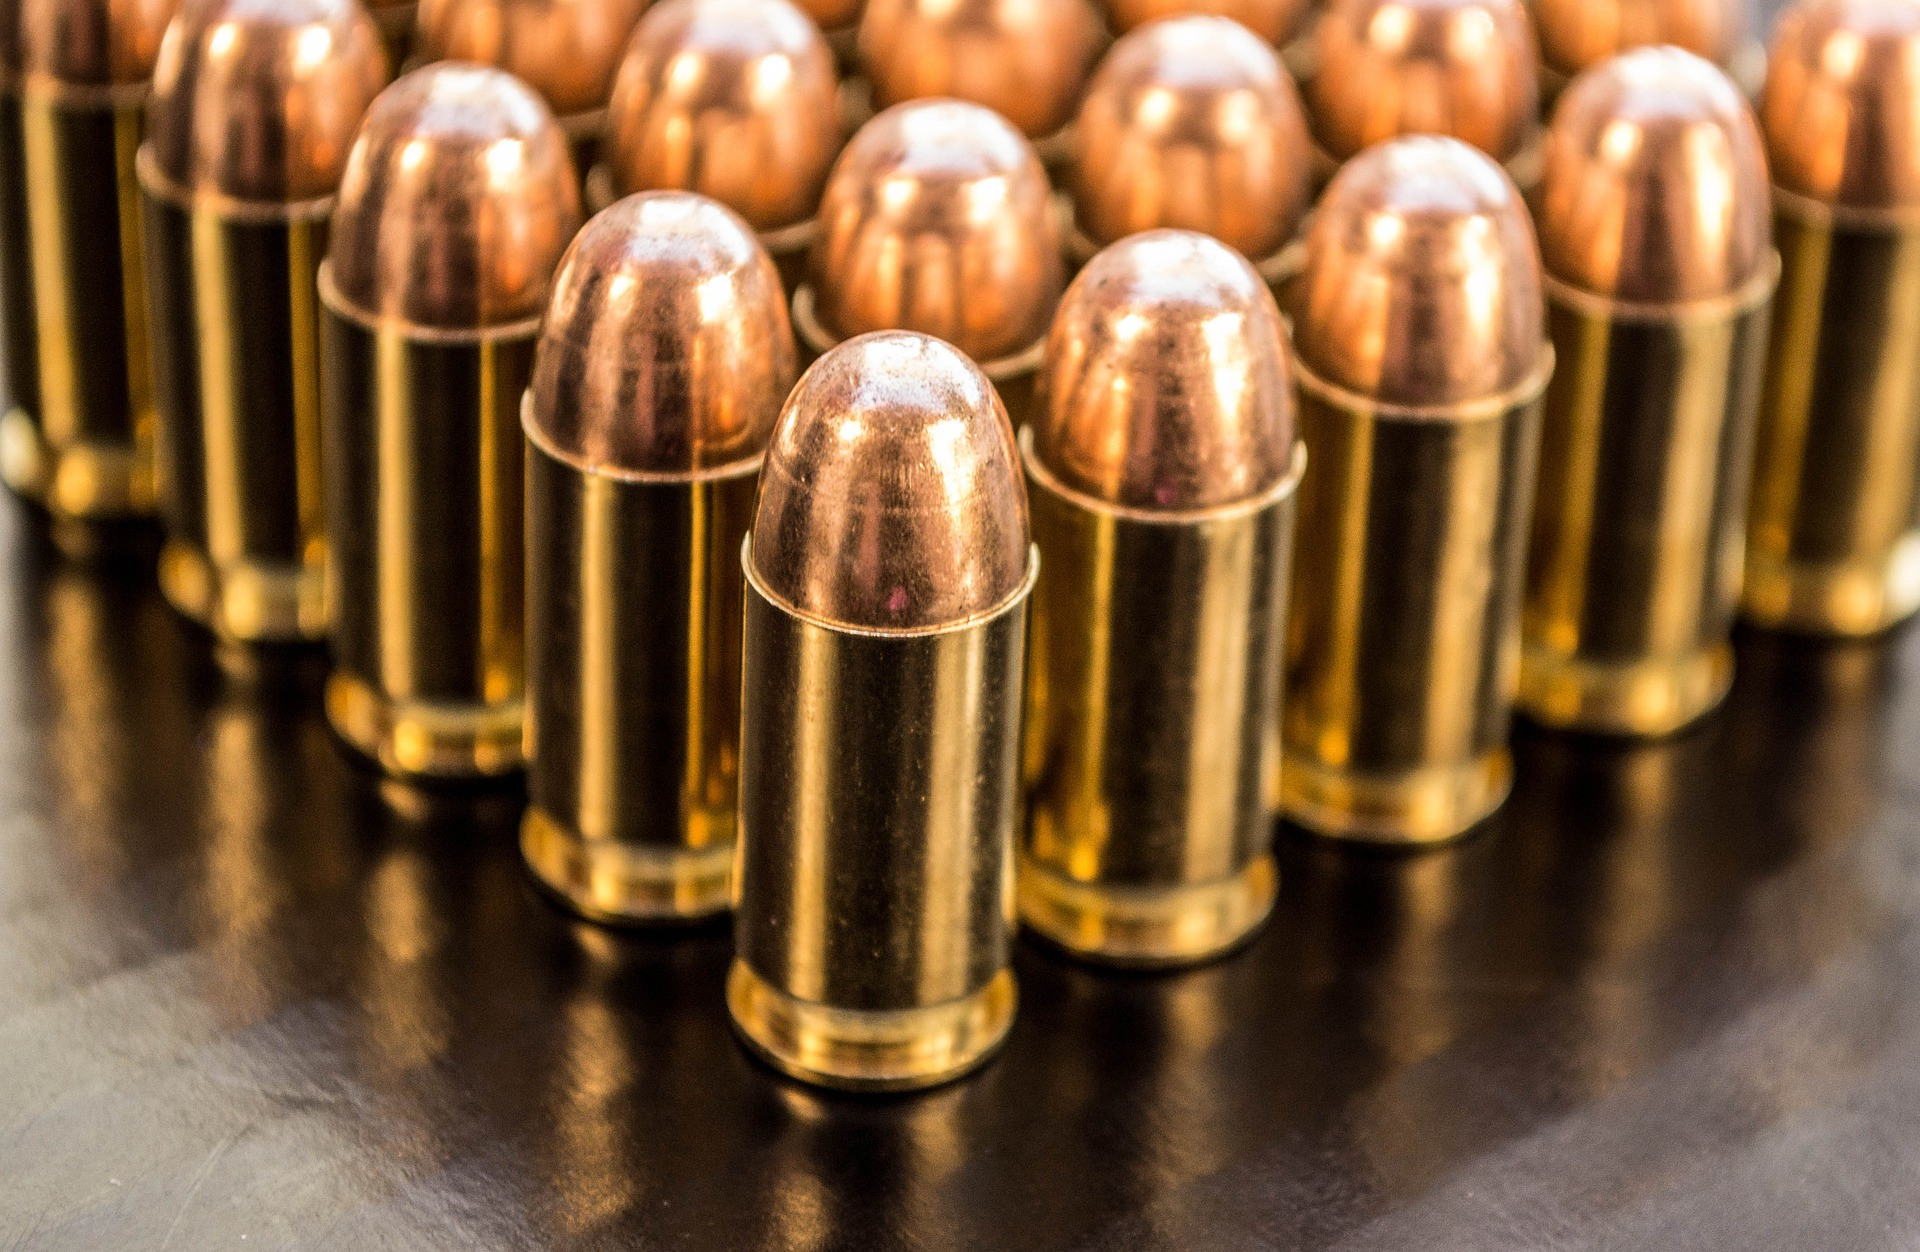 Federal background checks on ammo sales pushed by Democrats